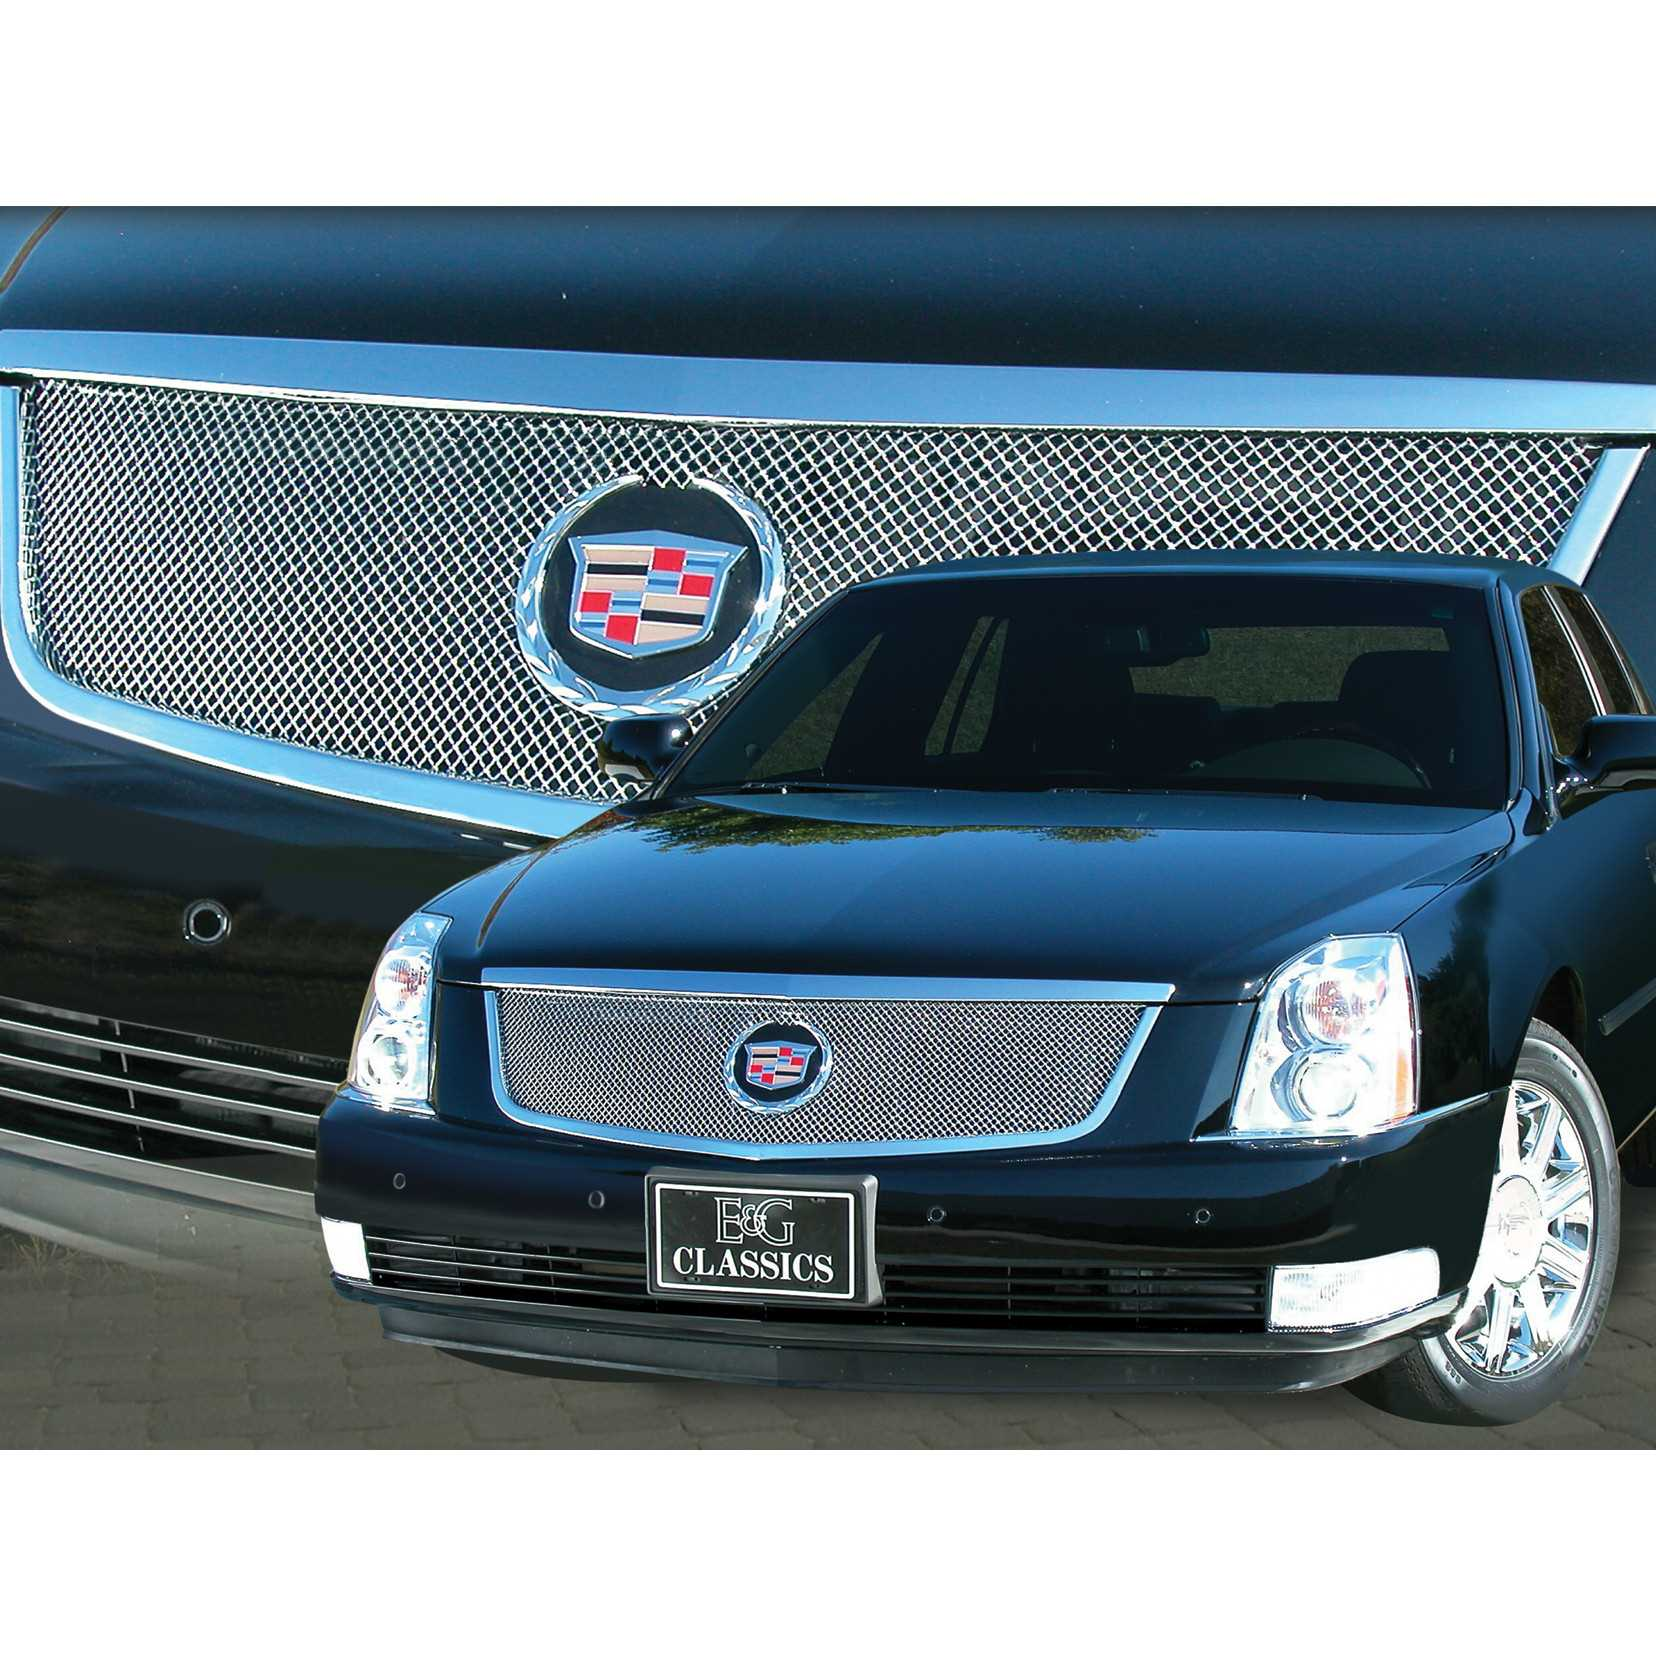 sedan composite dts platinum radiant collection large groovecar pla luxury cadillac research silver